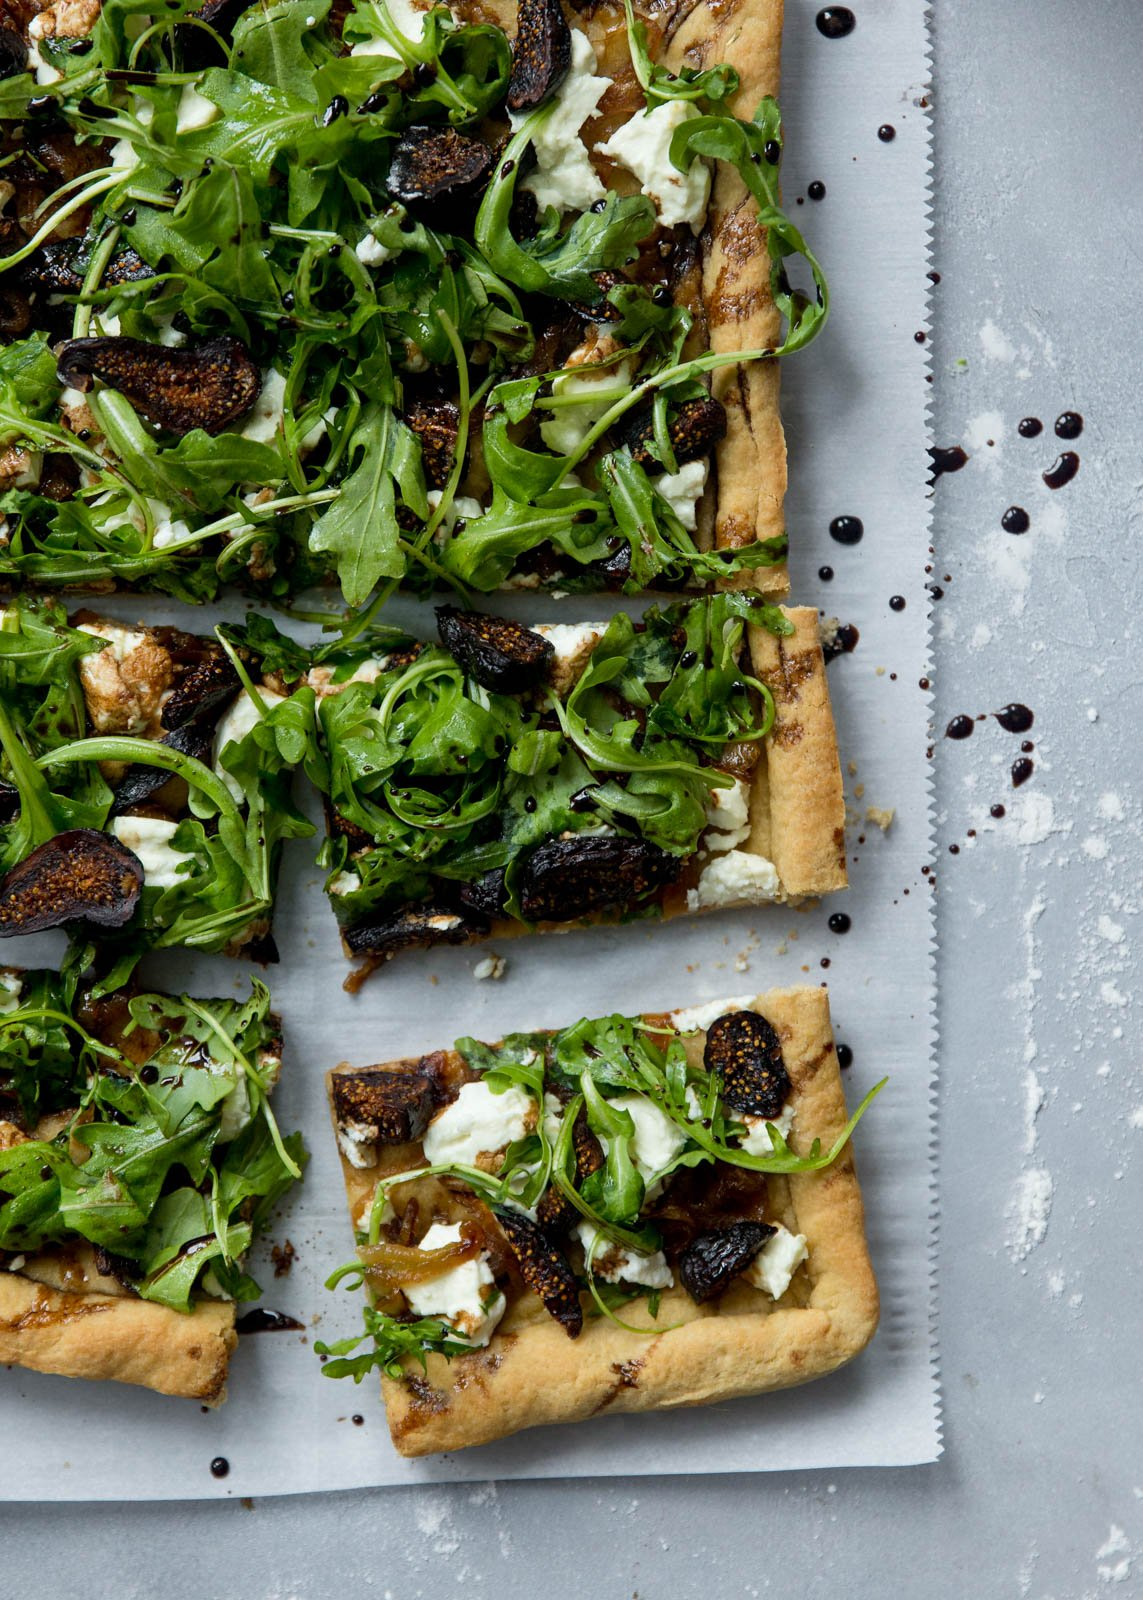 Amazing fig and goat cheese pizza with caramelized onion, goat cheese and an easy homemade 100% whole wheat pizza dough! Seriously sooooo good.